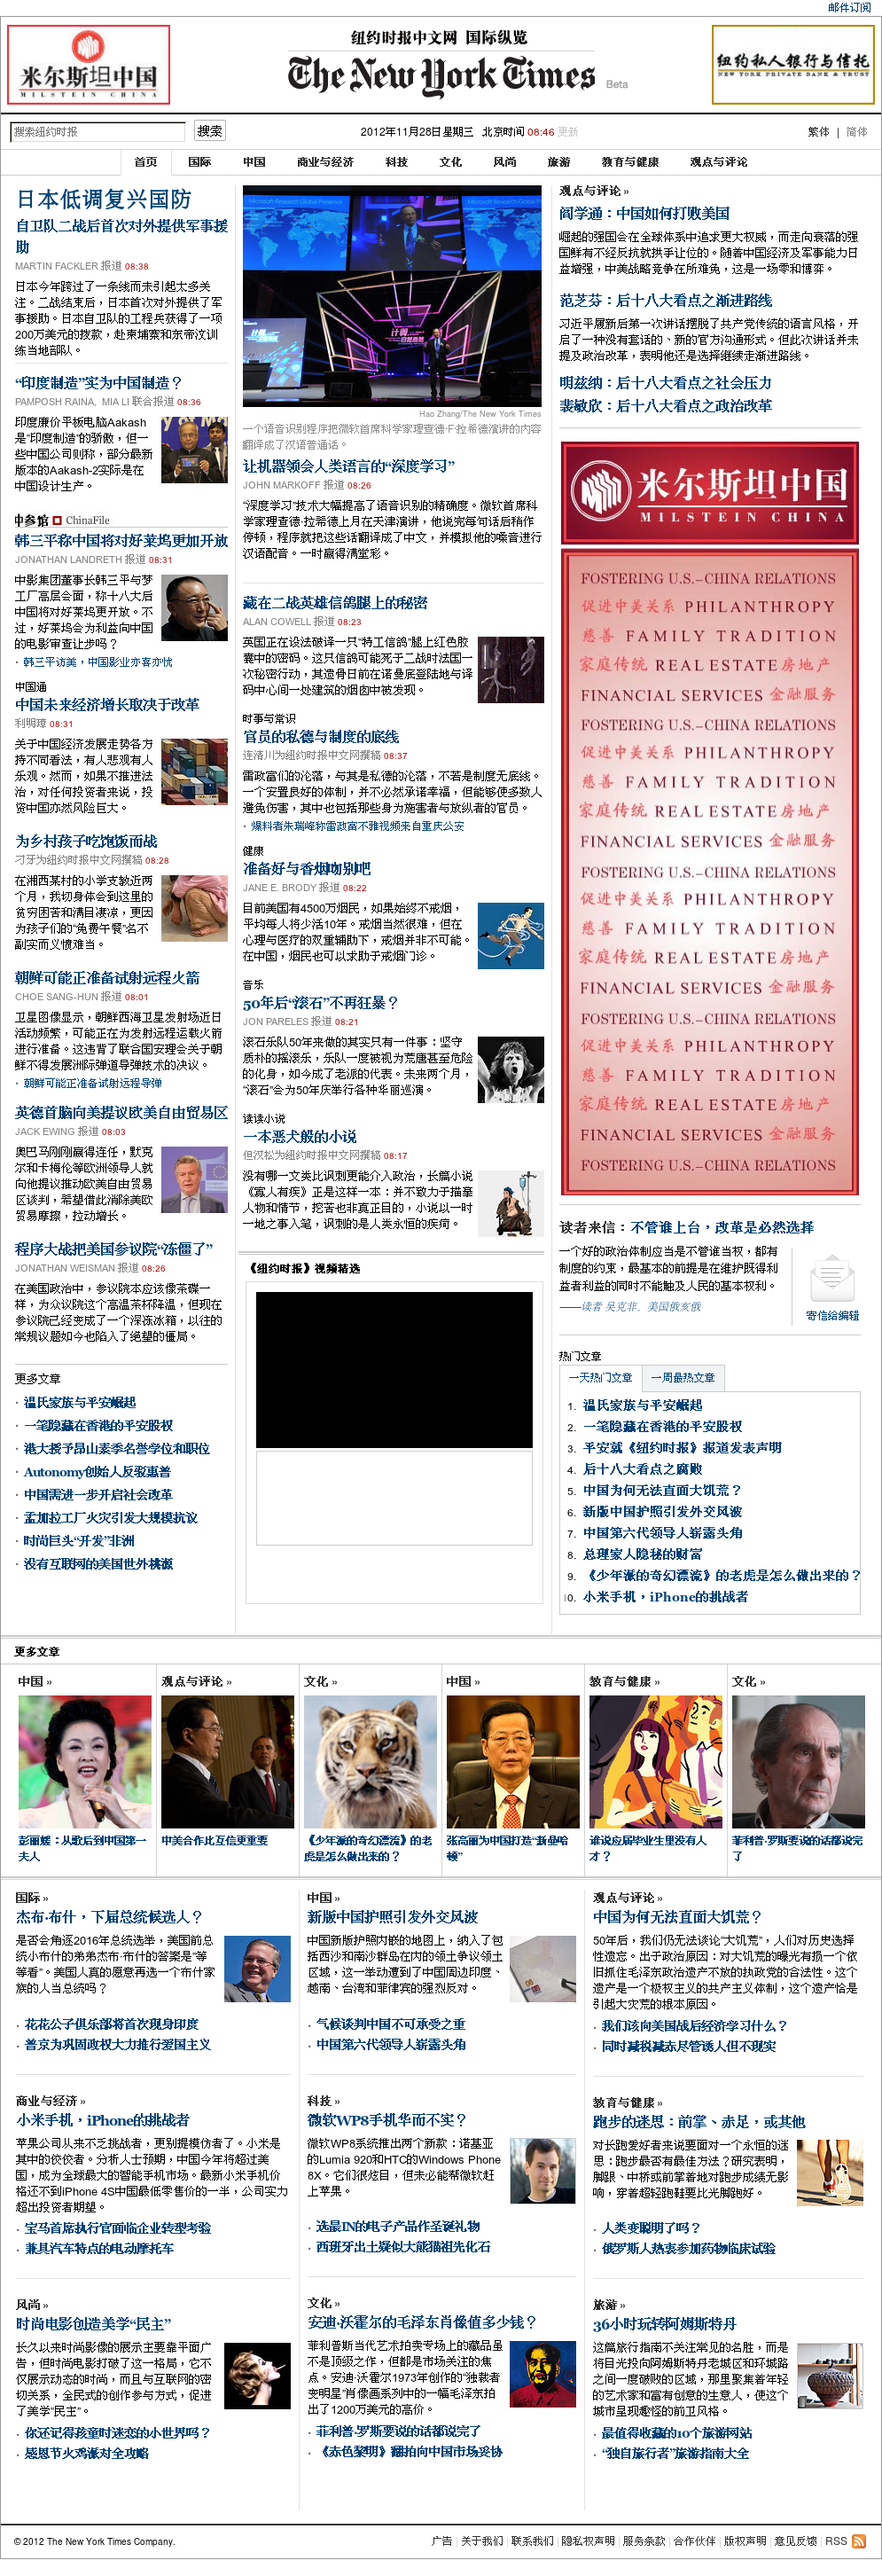 The New York Times (Chinese) at Wednesday Nov. 28, 2012, 1:25 a.m. UTC